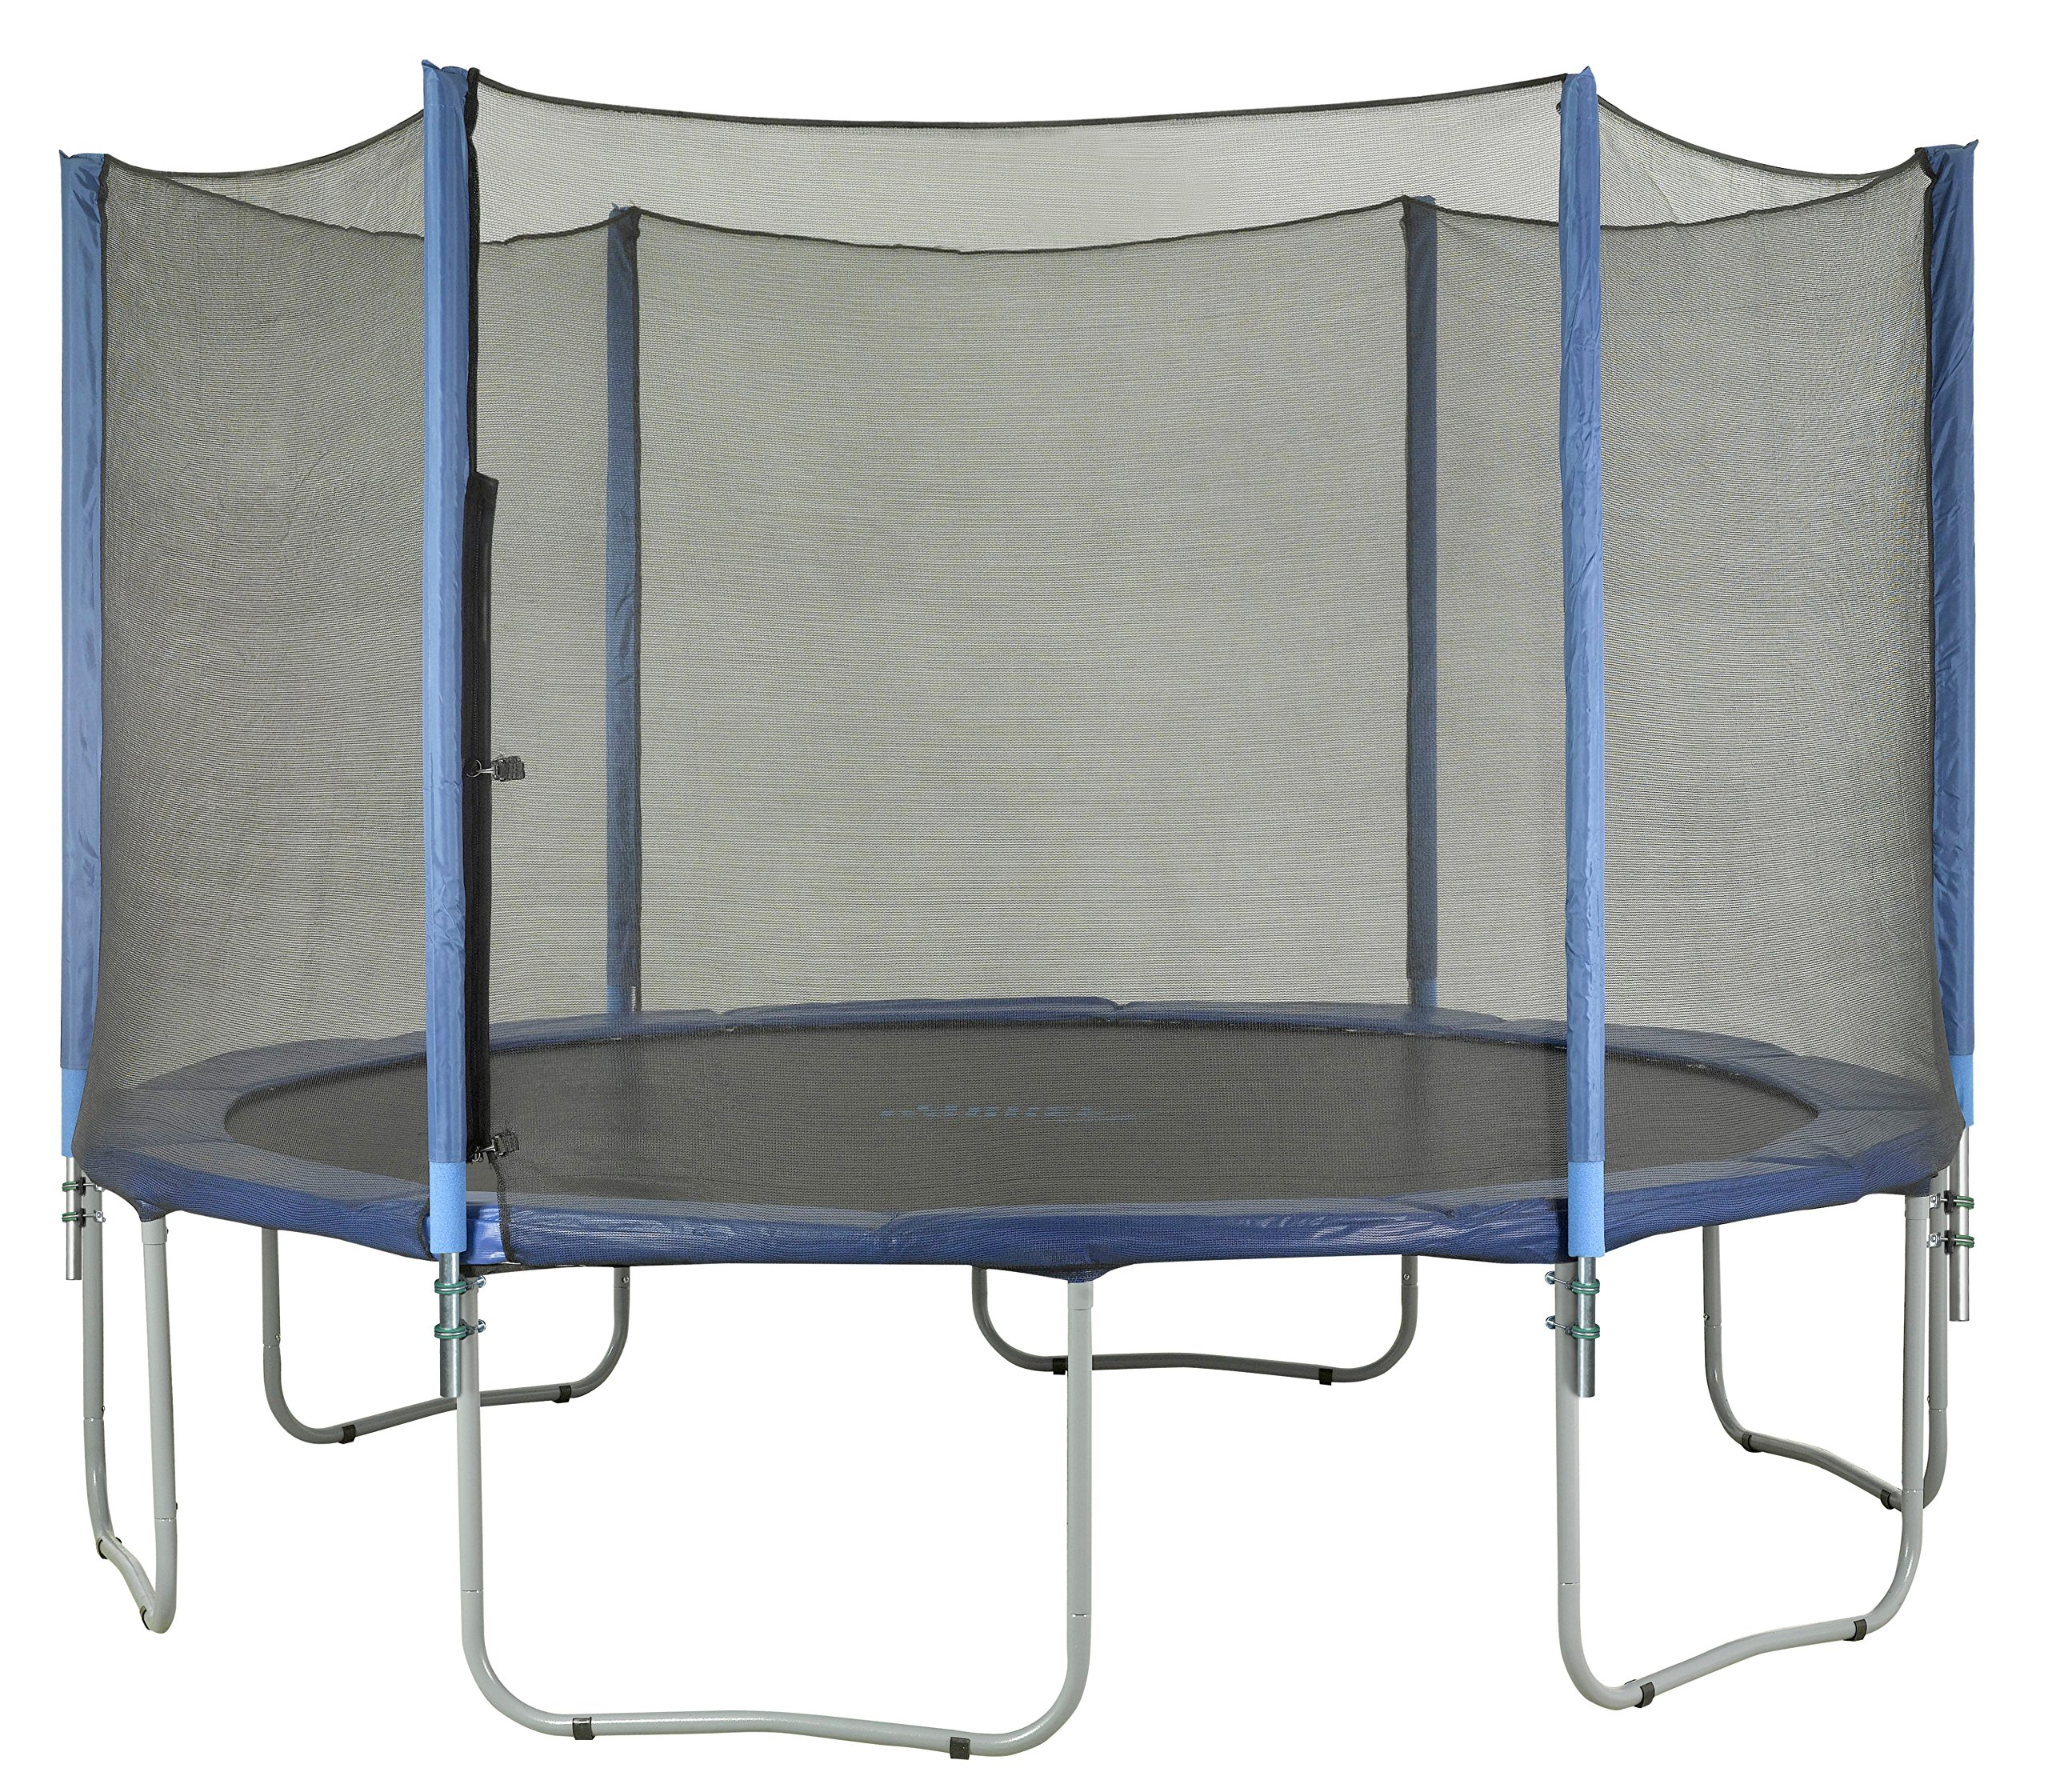 Trampoline Enclosure Set, to fit 15 FT. Round Frames, for 3 or 6 W-Shaped Legs -Set Includes: Net, Poles & Hardware Only by Upper Bounce (Image #5)